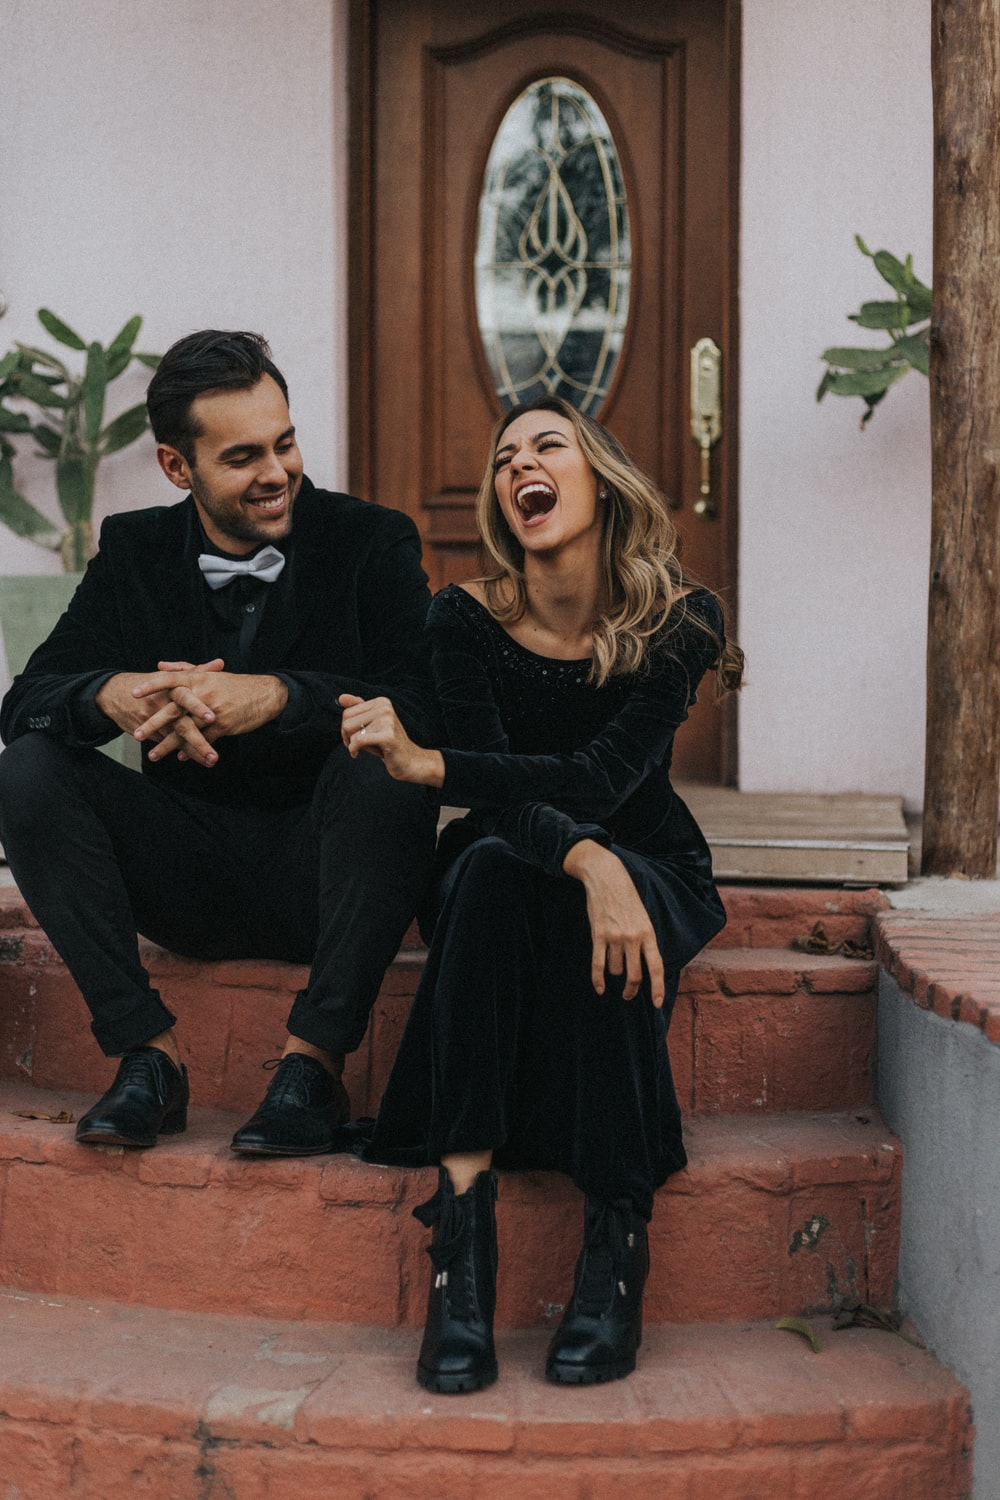 man and woman laughing outside house